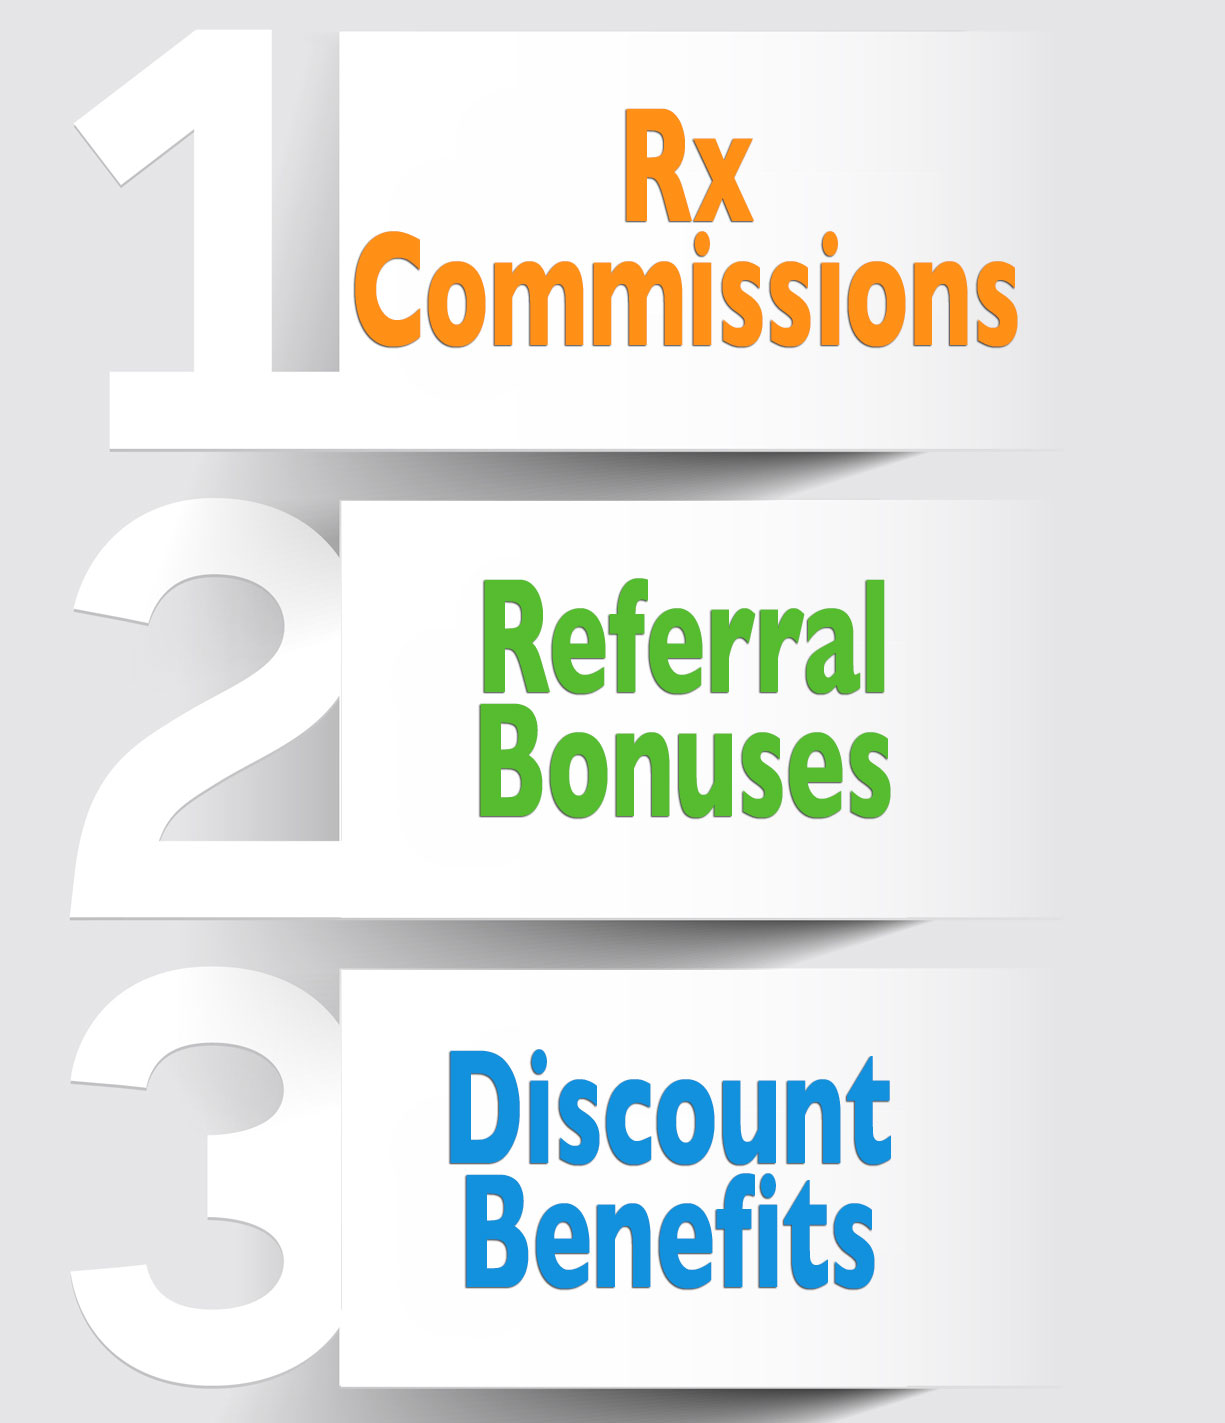 Free rx dental plan - Freerxplus Pays Up To 2 10 In Commissions Each Time Someone Saves Money On A Prescription No Competitor Can Match This